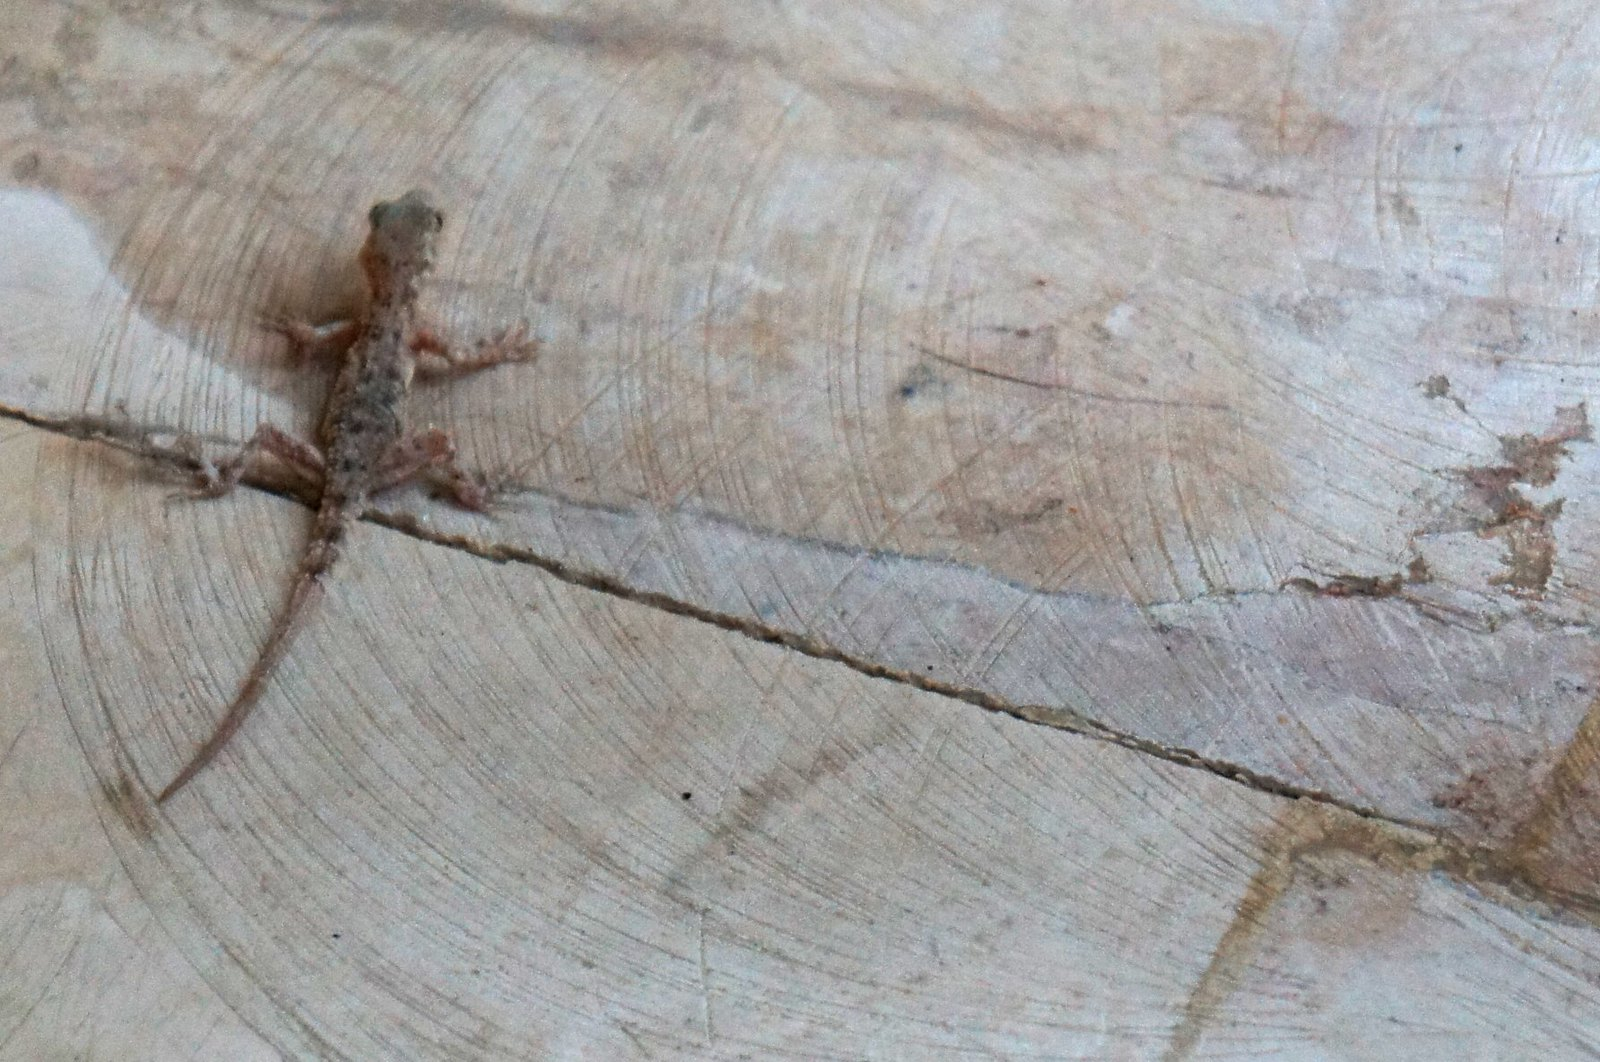 ... and a little lizard : )